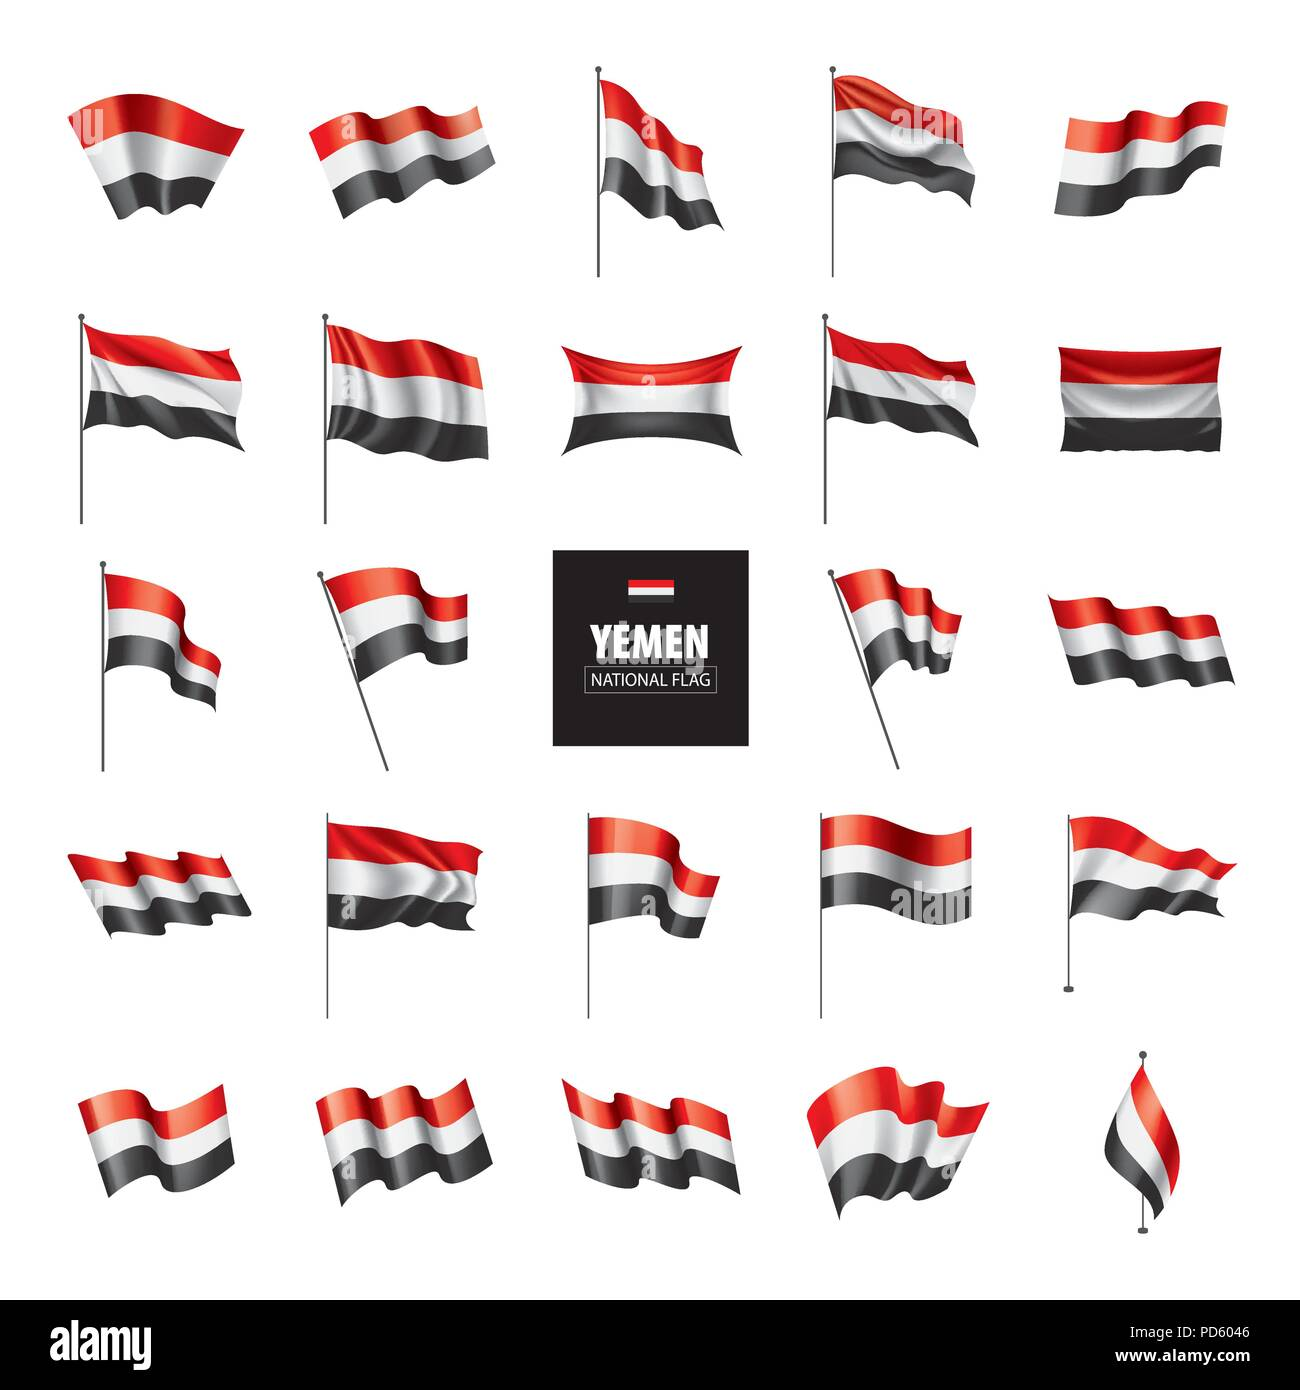 Yemeni flag, vector illustration Stock Vector